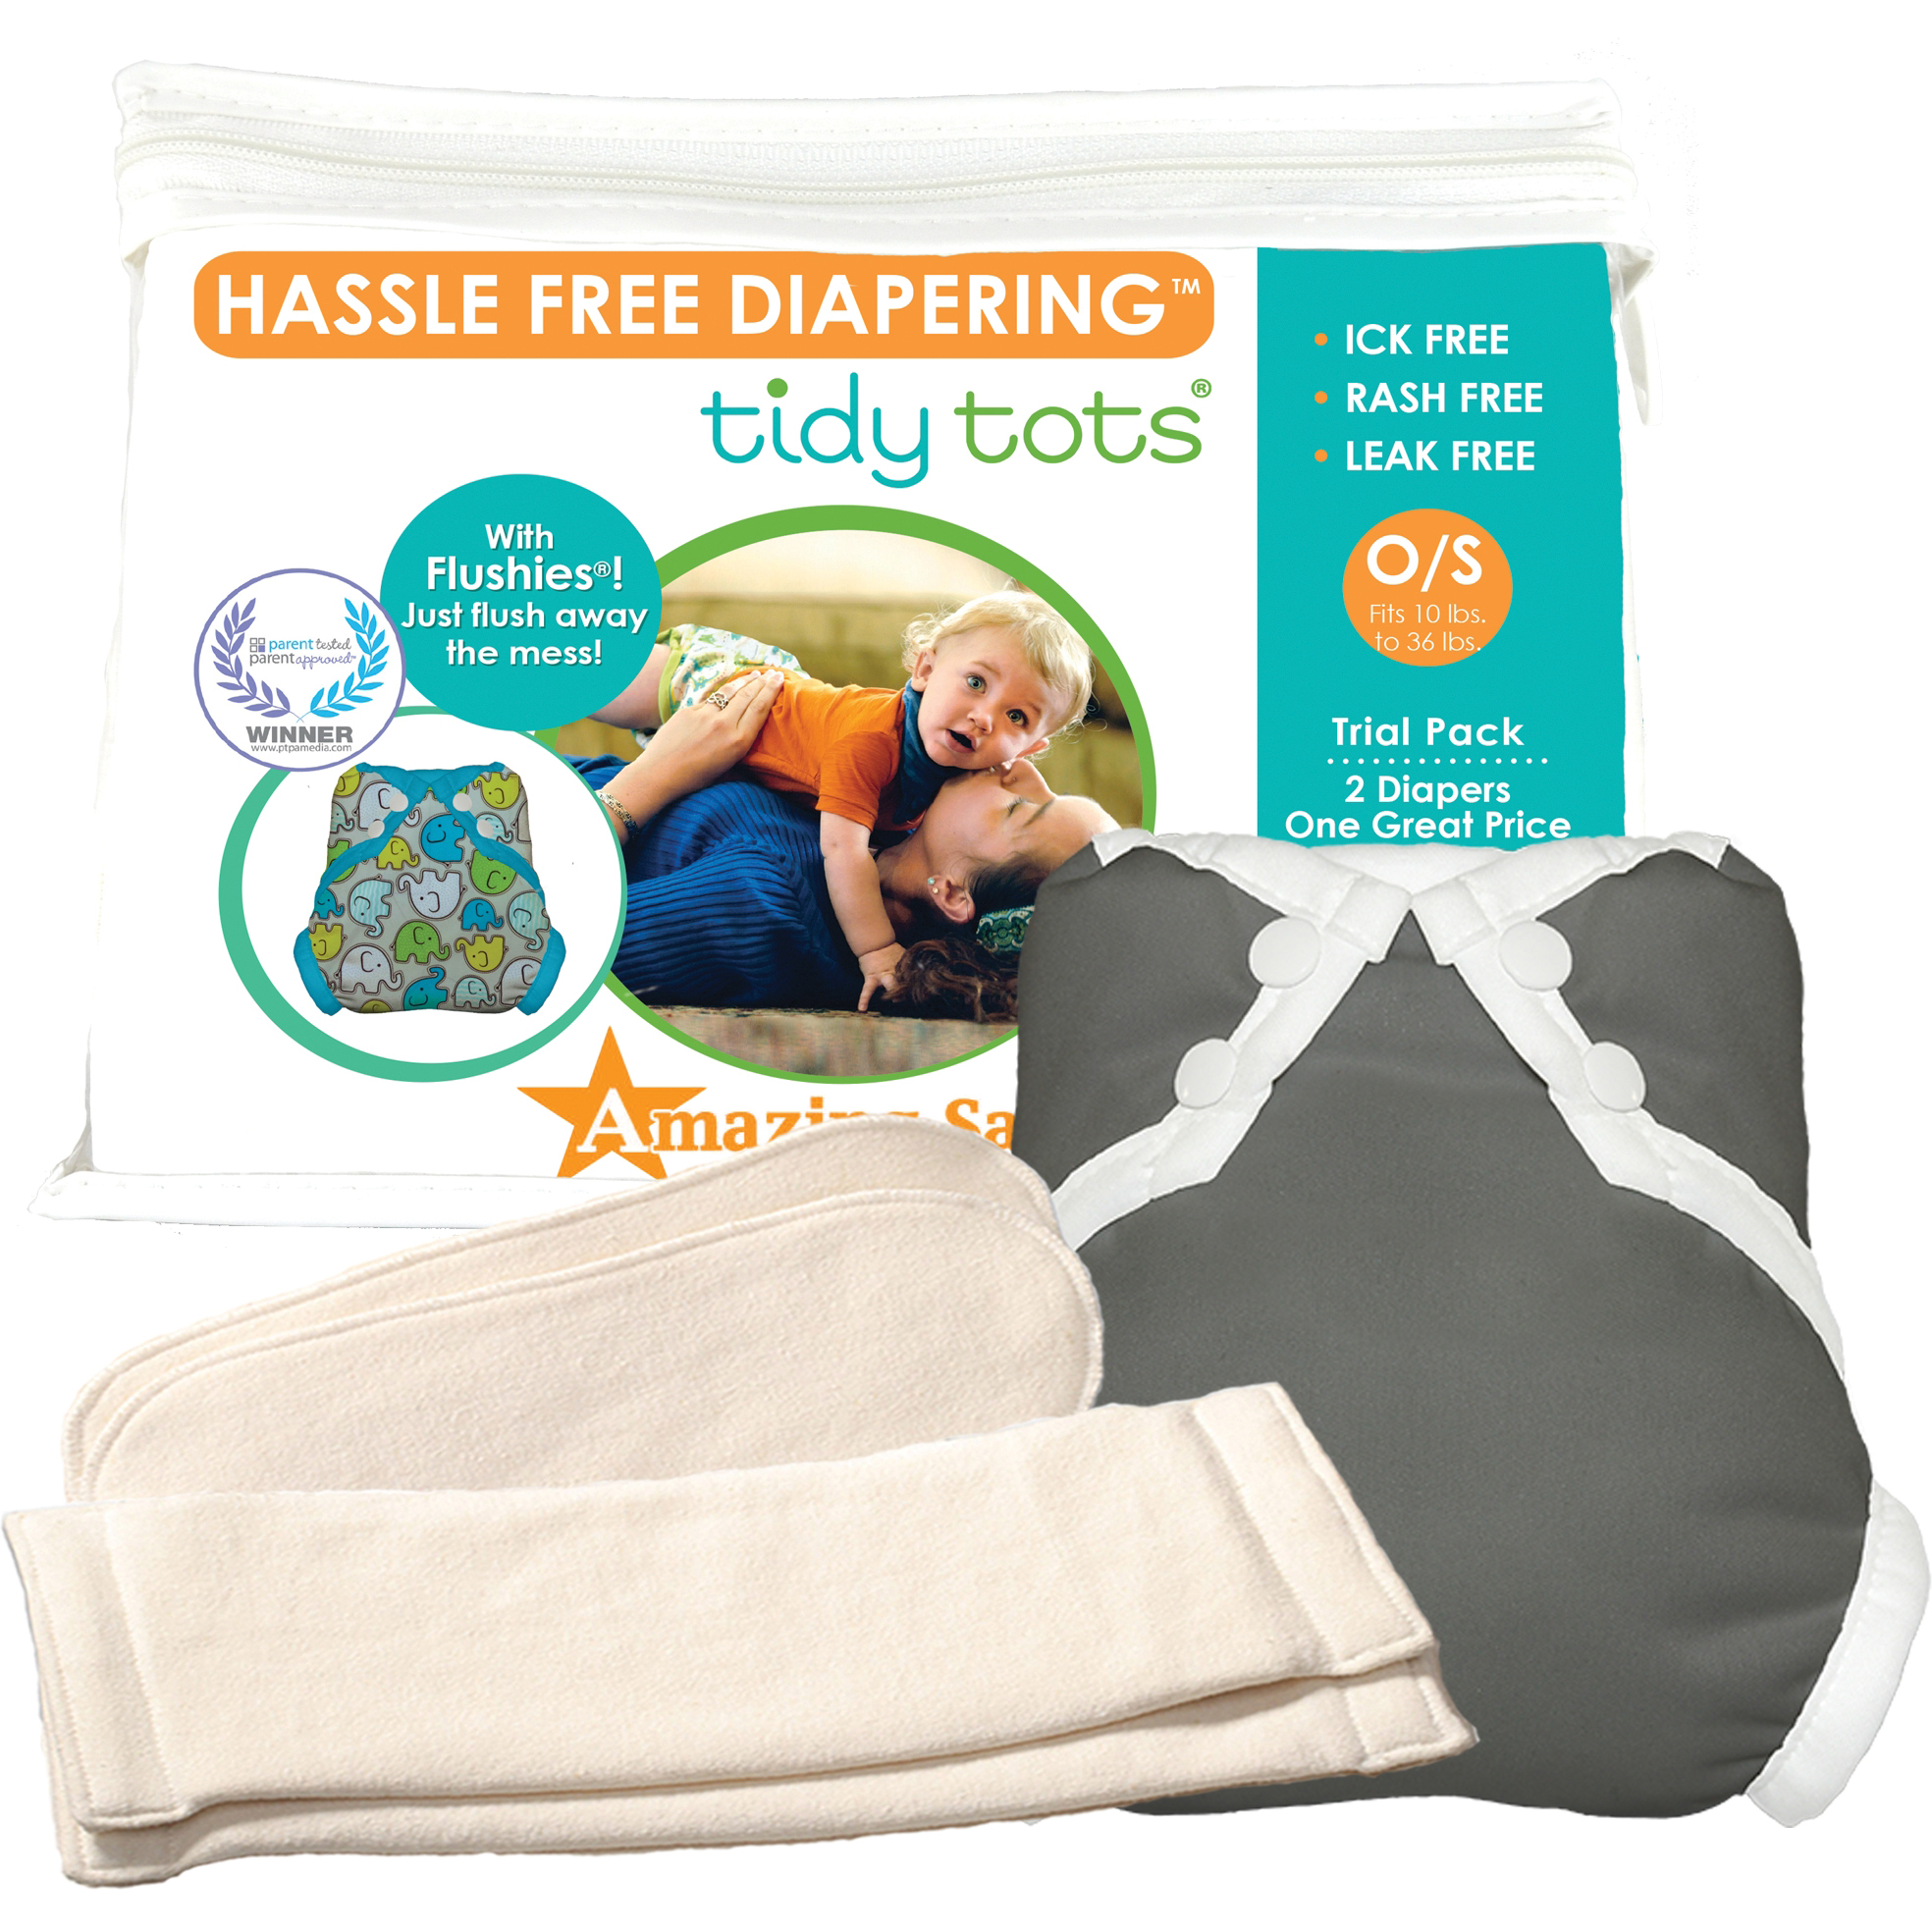 Tidy Tots Hassle Free 2 Diaper Trial Set with Grey Cover